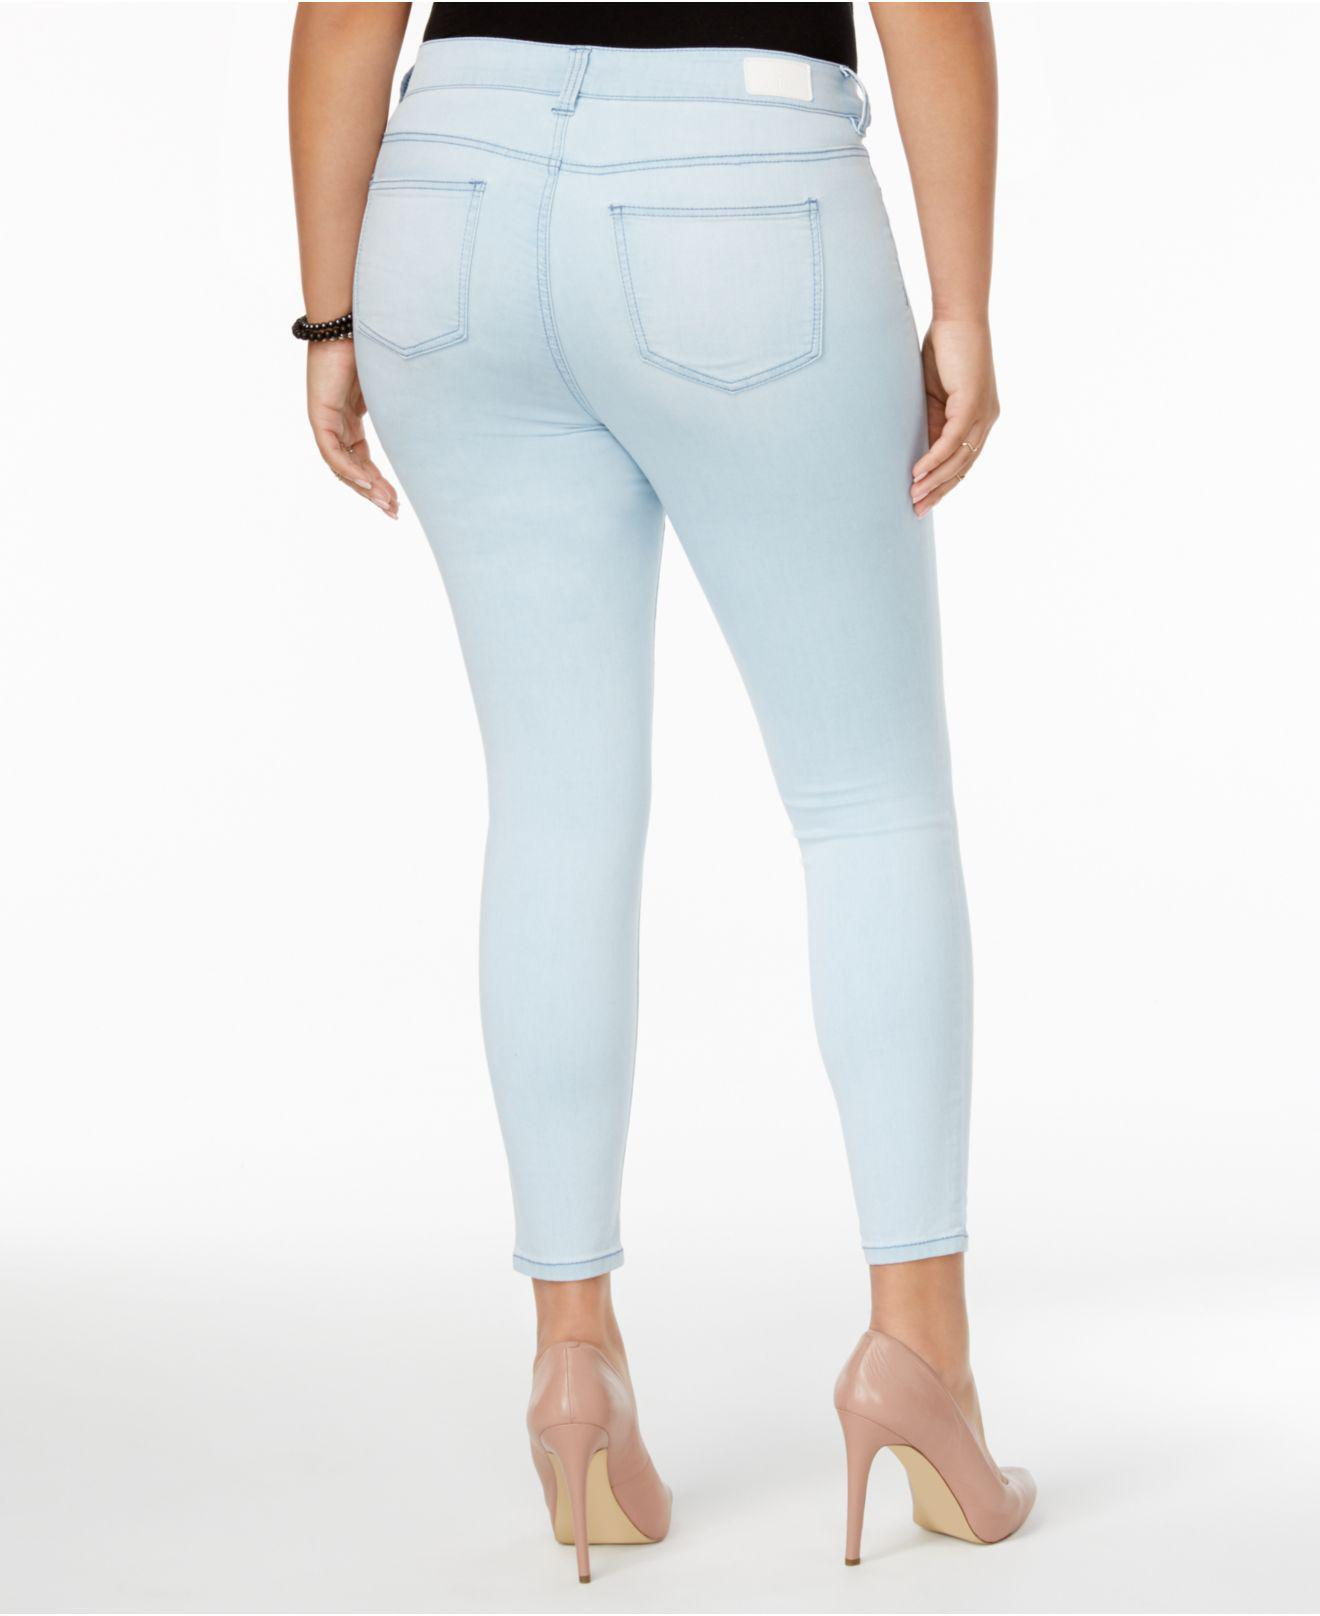 31176658e61 Lyst - Celebrity Pink Plus Size Outsiders Wash Super-soft Skinny Jeans in  Blue